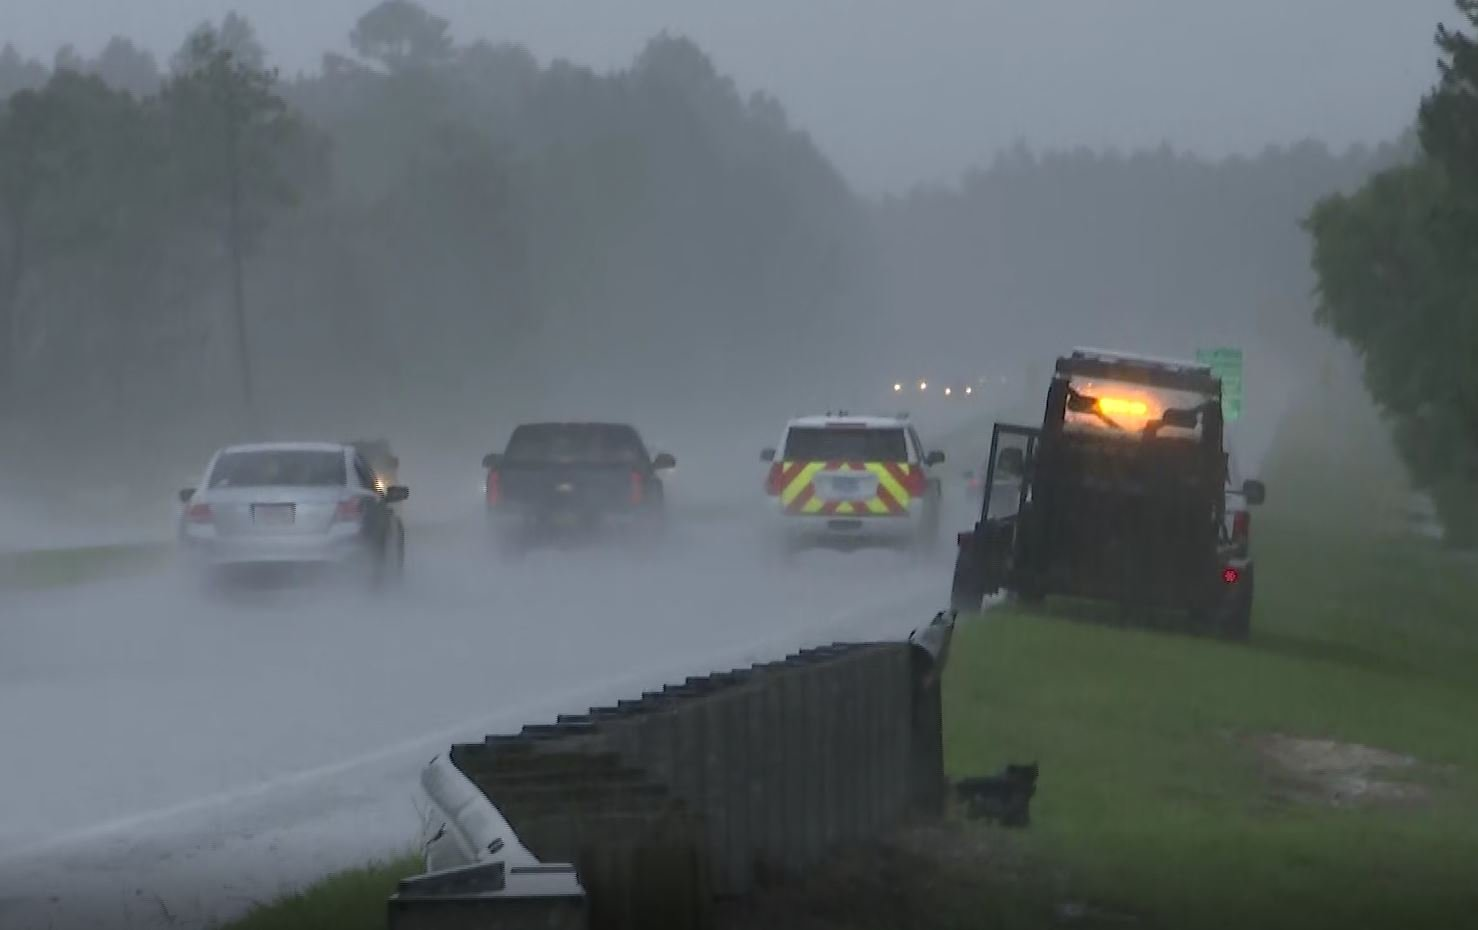 Rain falls on Foley Beach Express as officials respond to the site of a small plane crash in woods off the highway. (Photo: Daeshen Smith, FOX10 News)